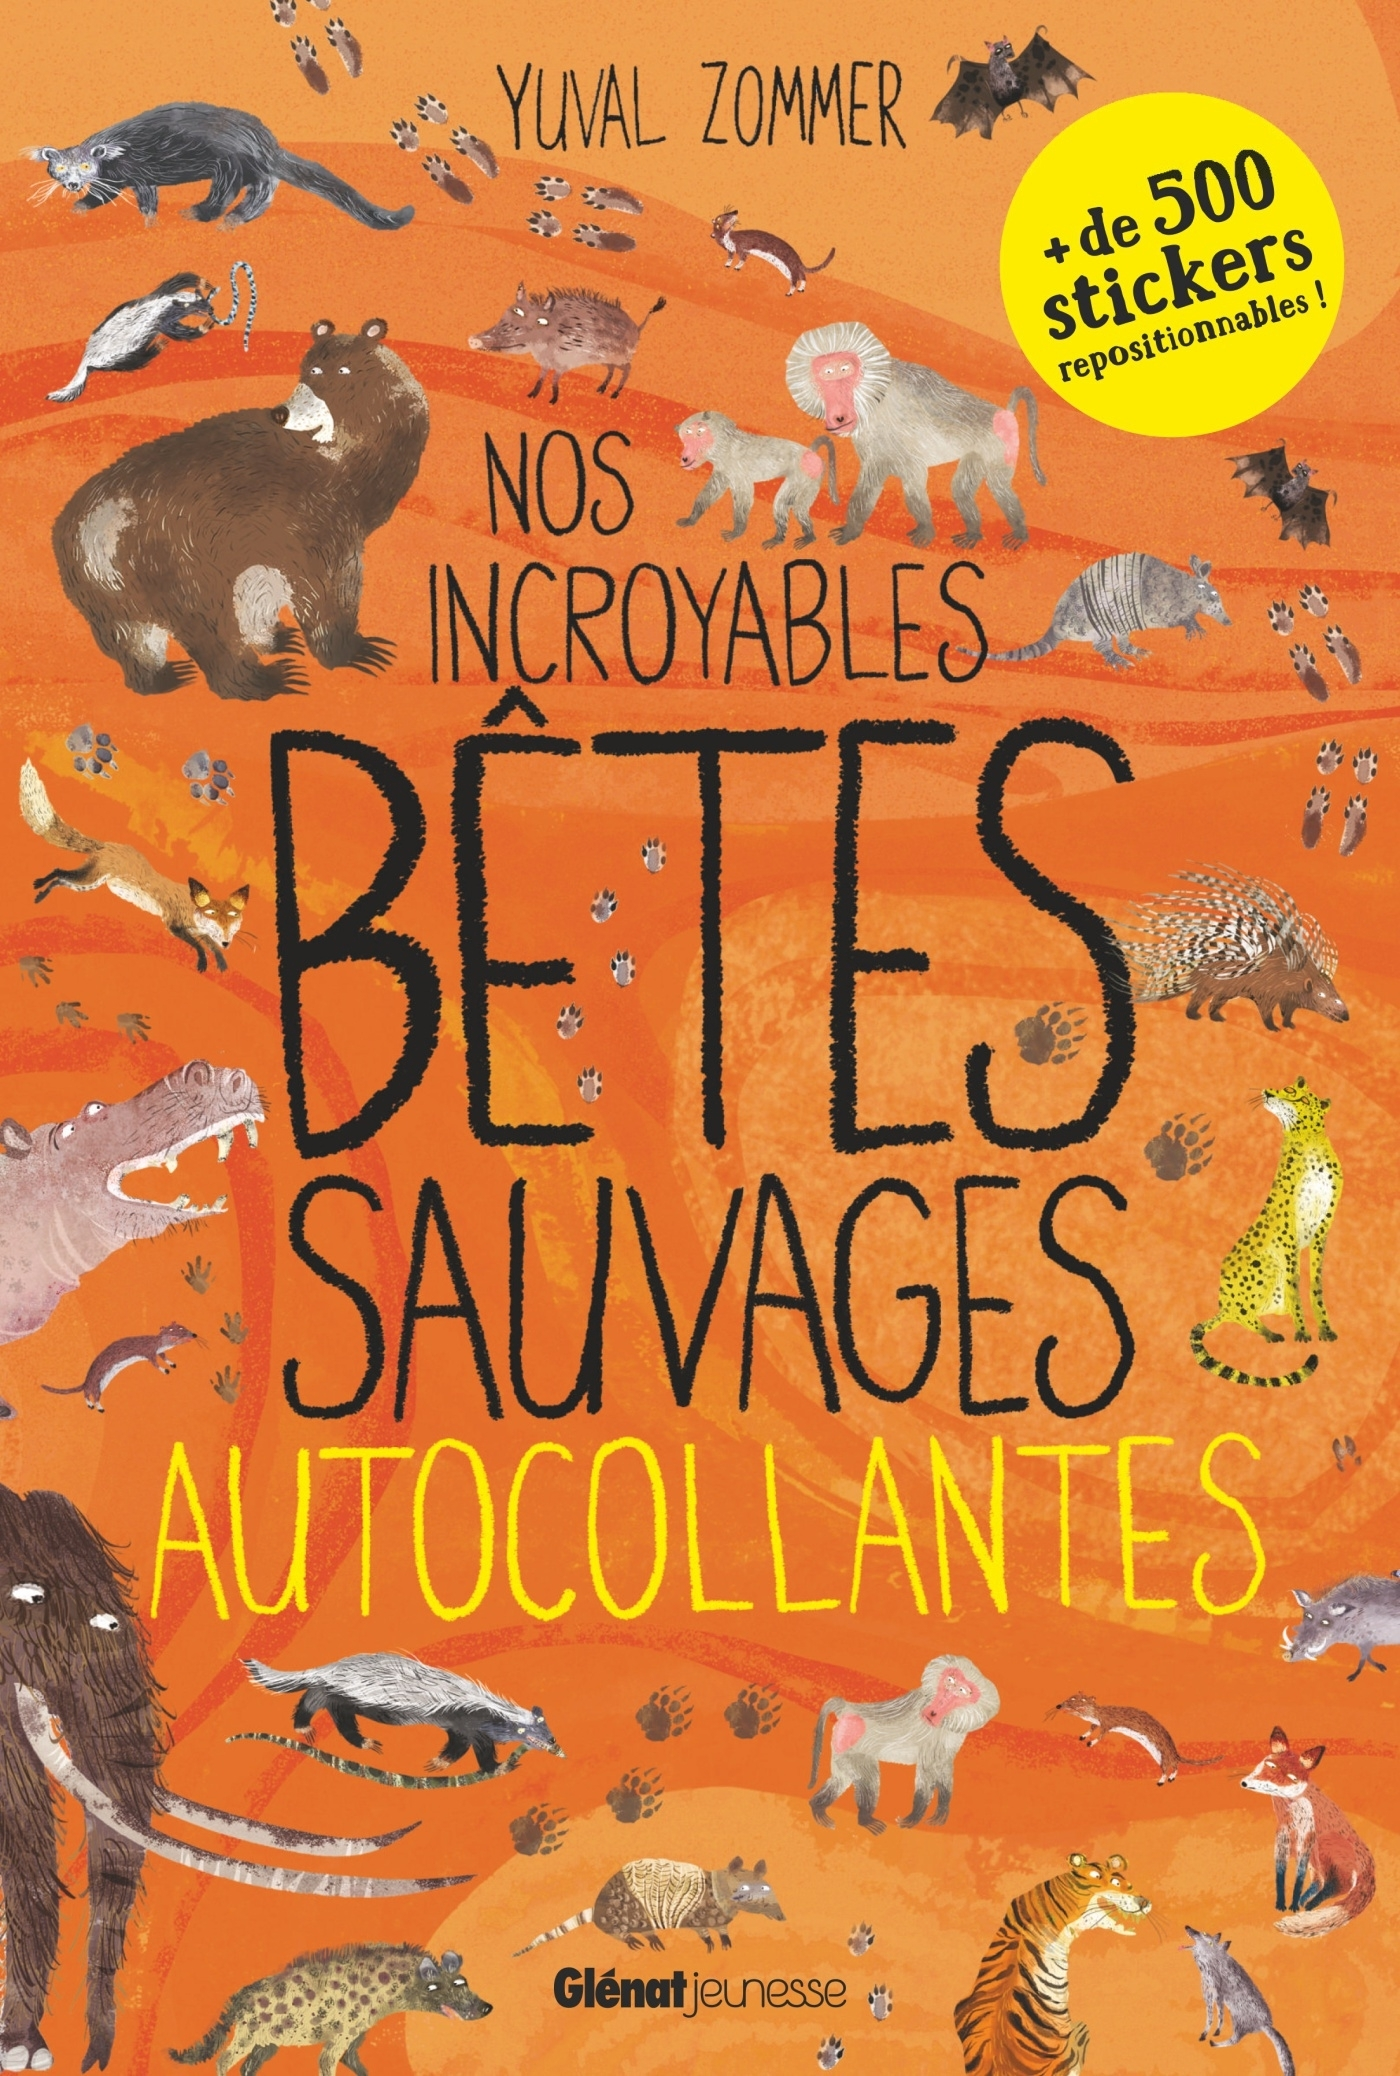 NOS INCROYABLES BETES SAUVAGES AUTOCOLLANTES